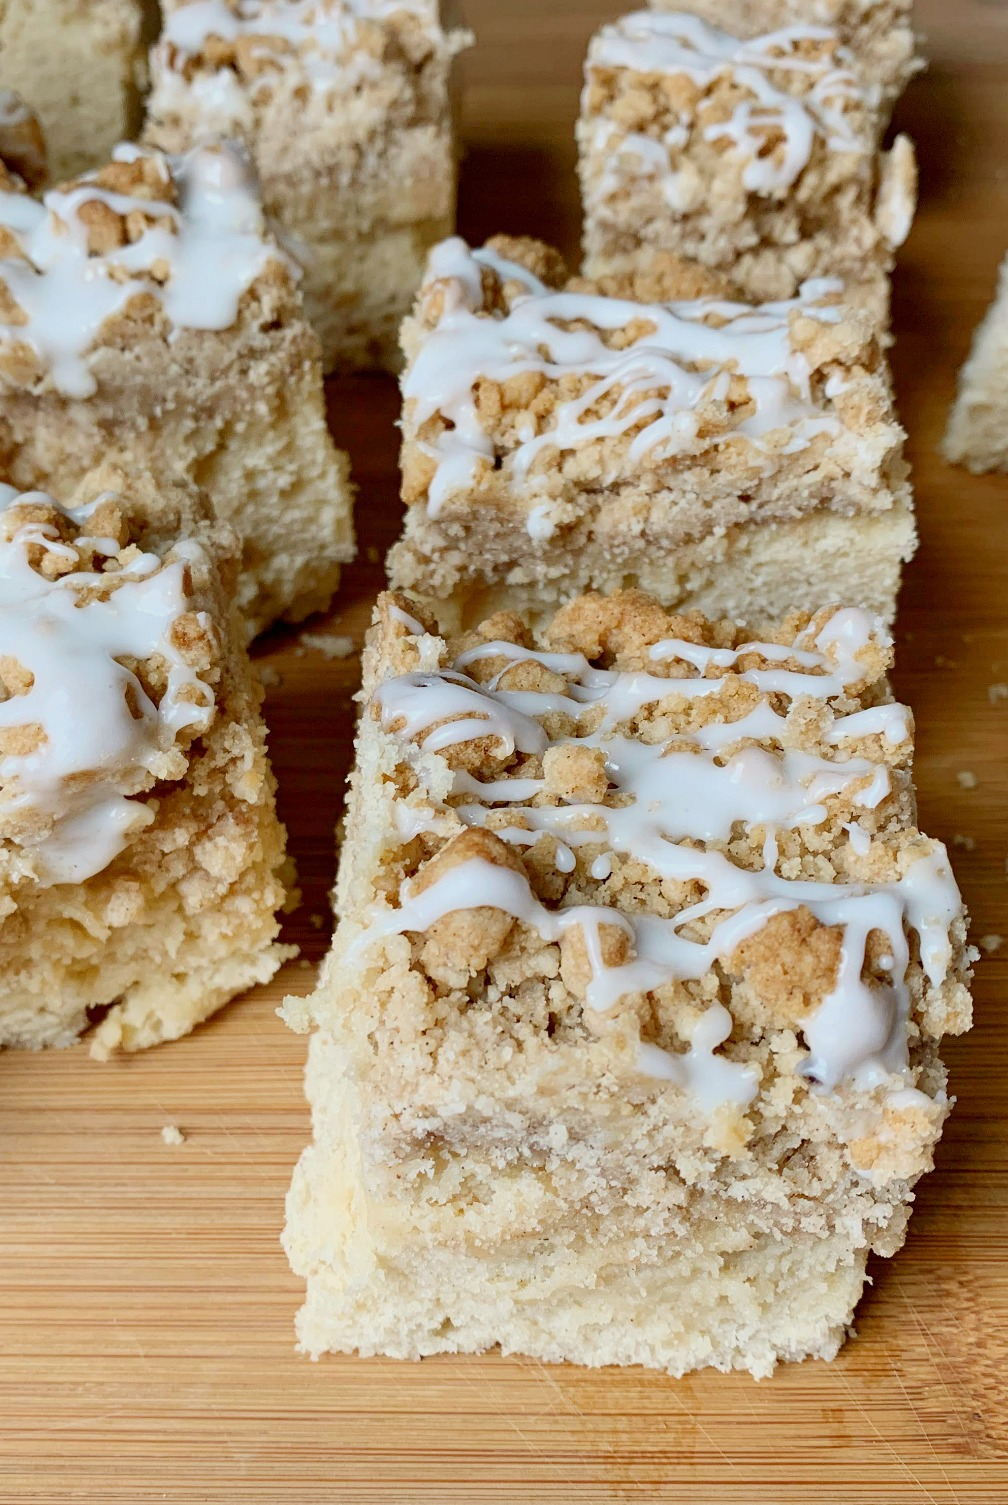 up close shot of a slice of New York Crumb Coffee Cake to show the glaze on top